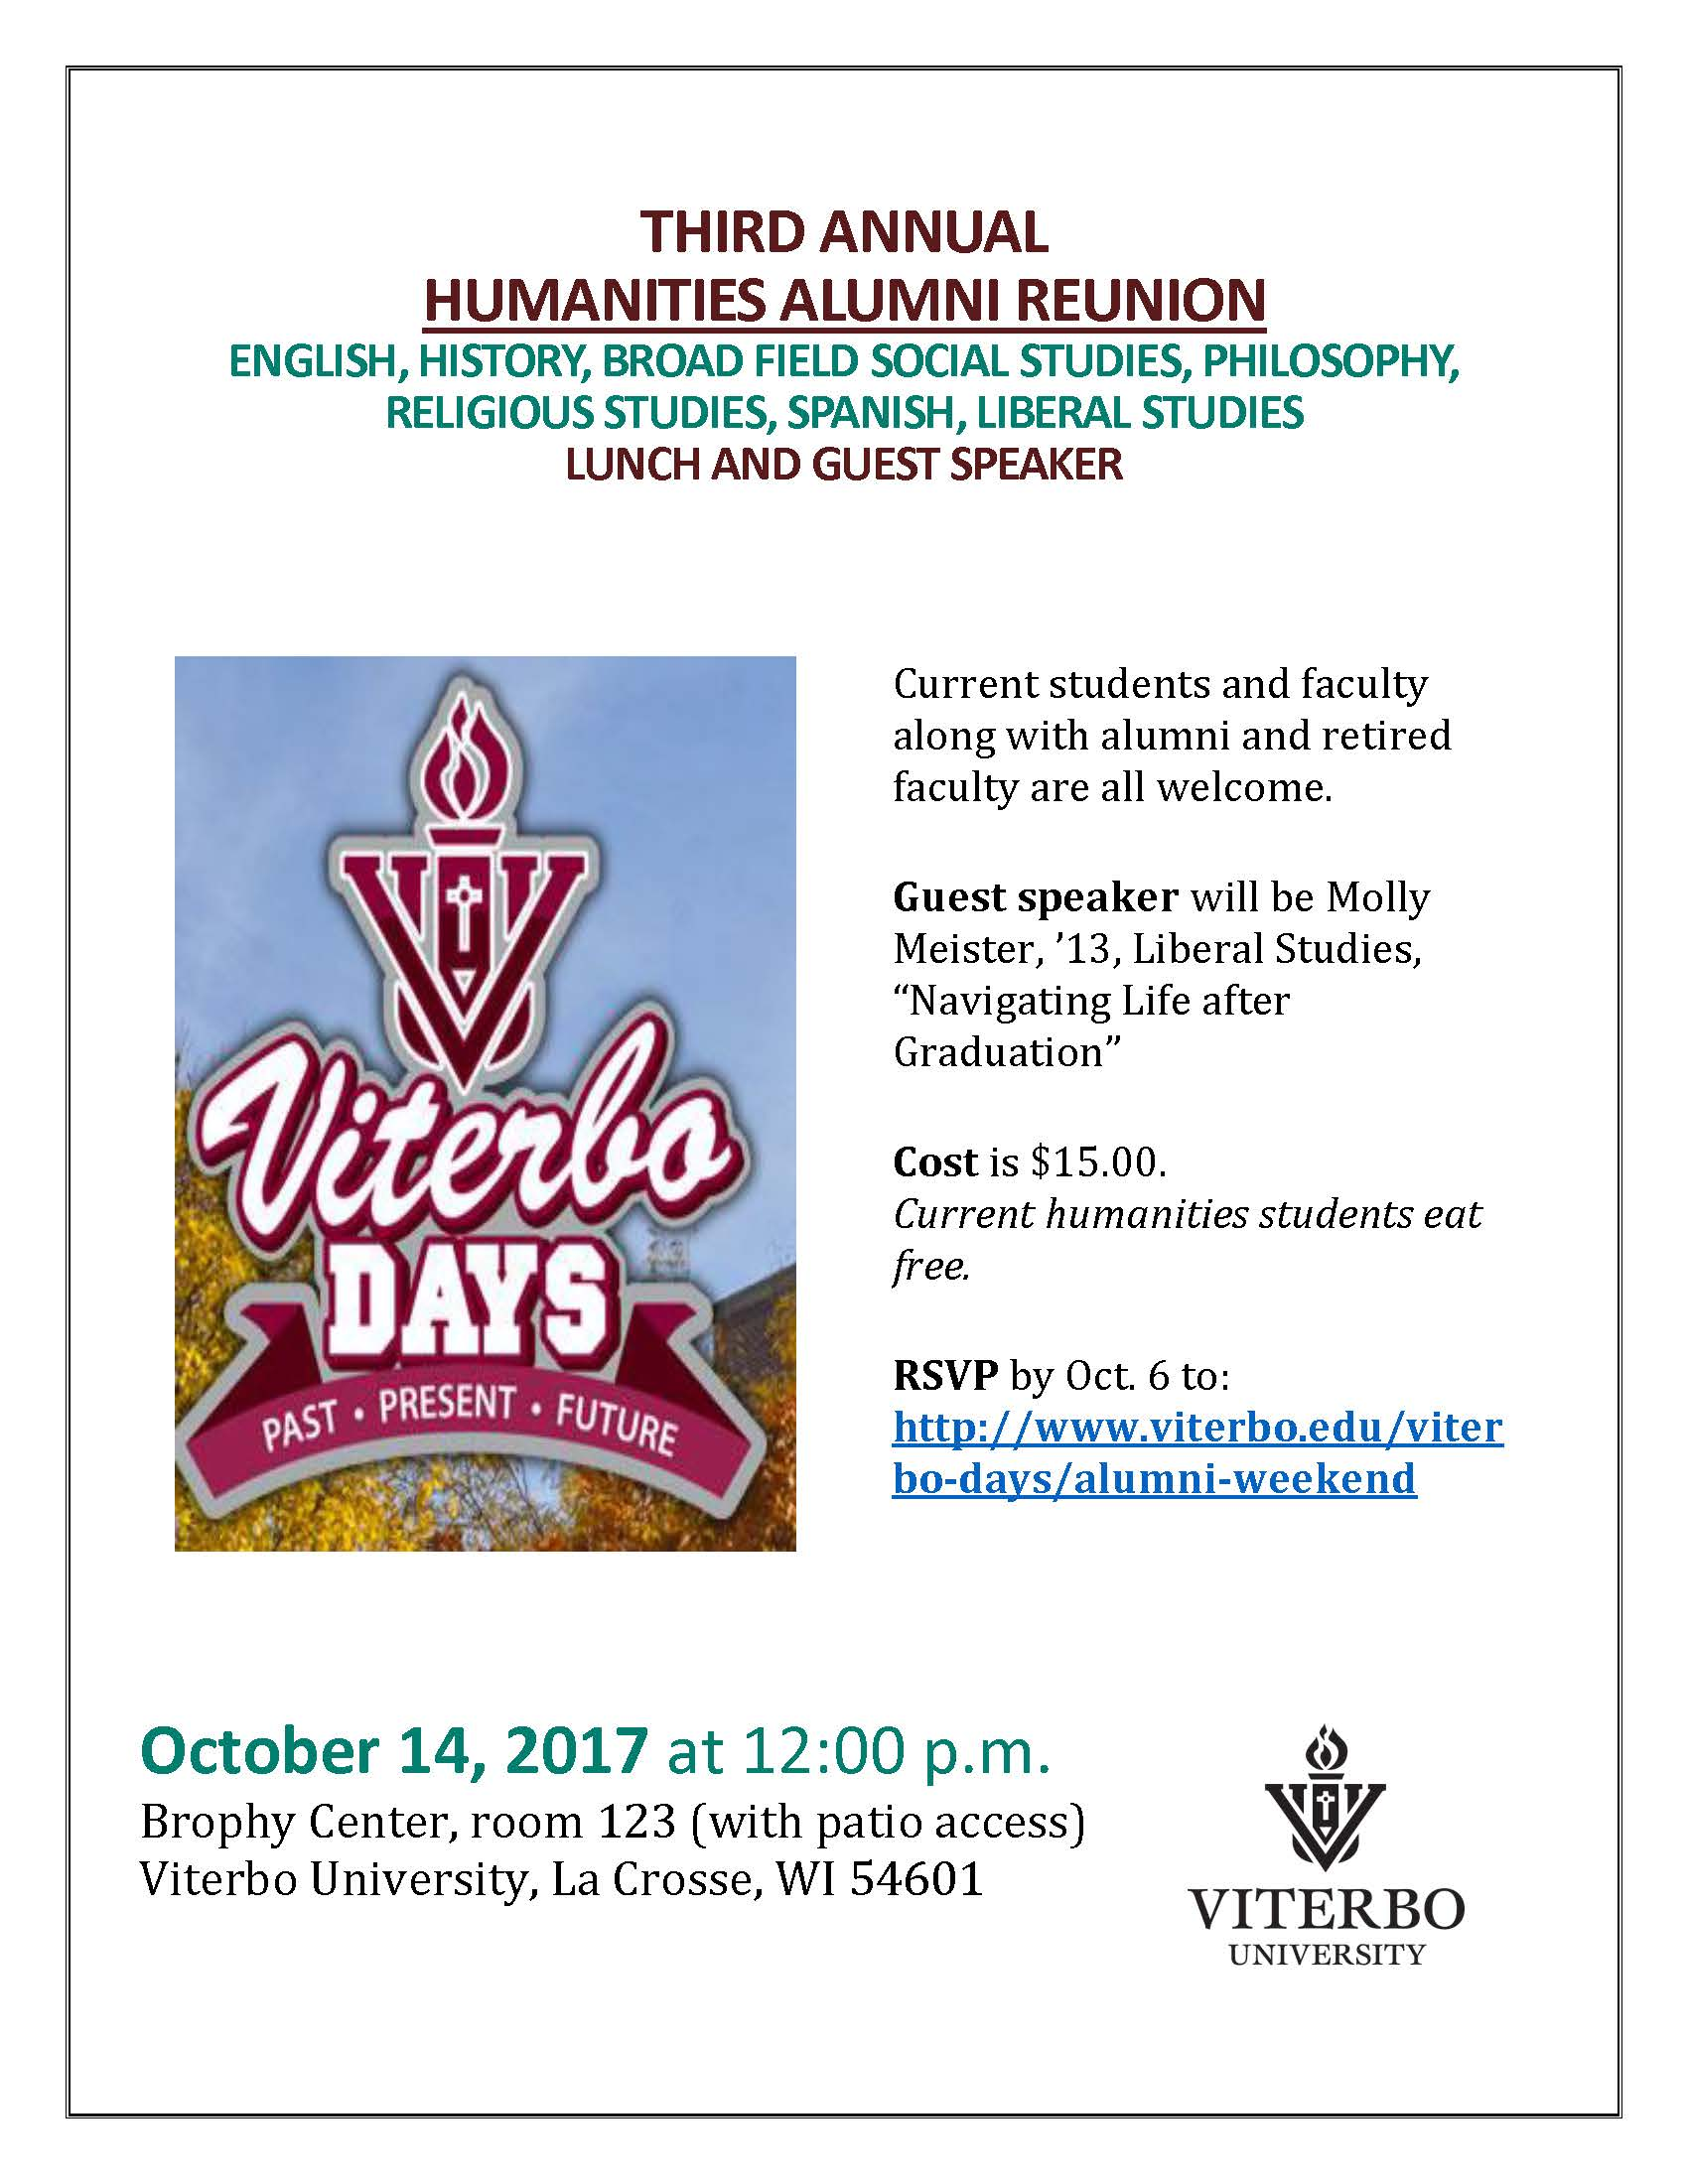 http://www.viterbo.edu/viterbo-days/alumni-weekend